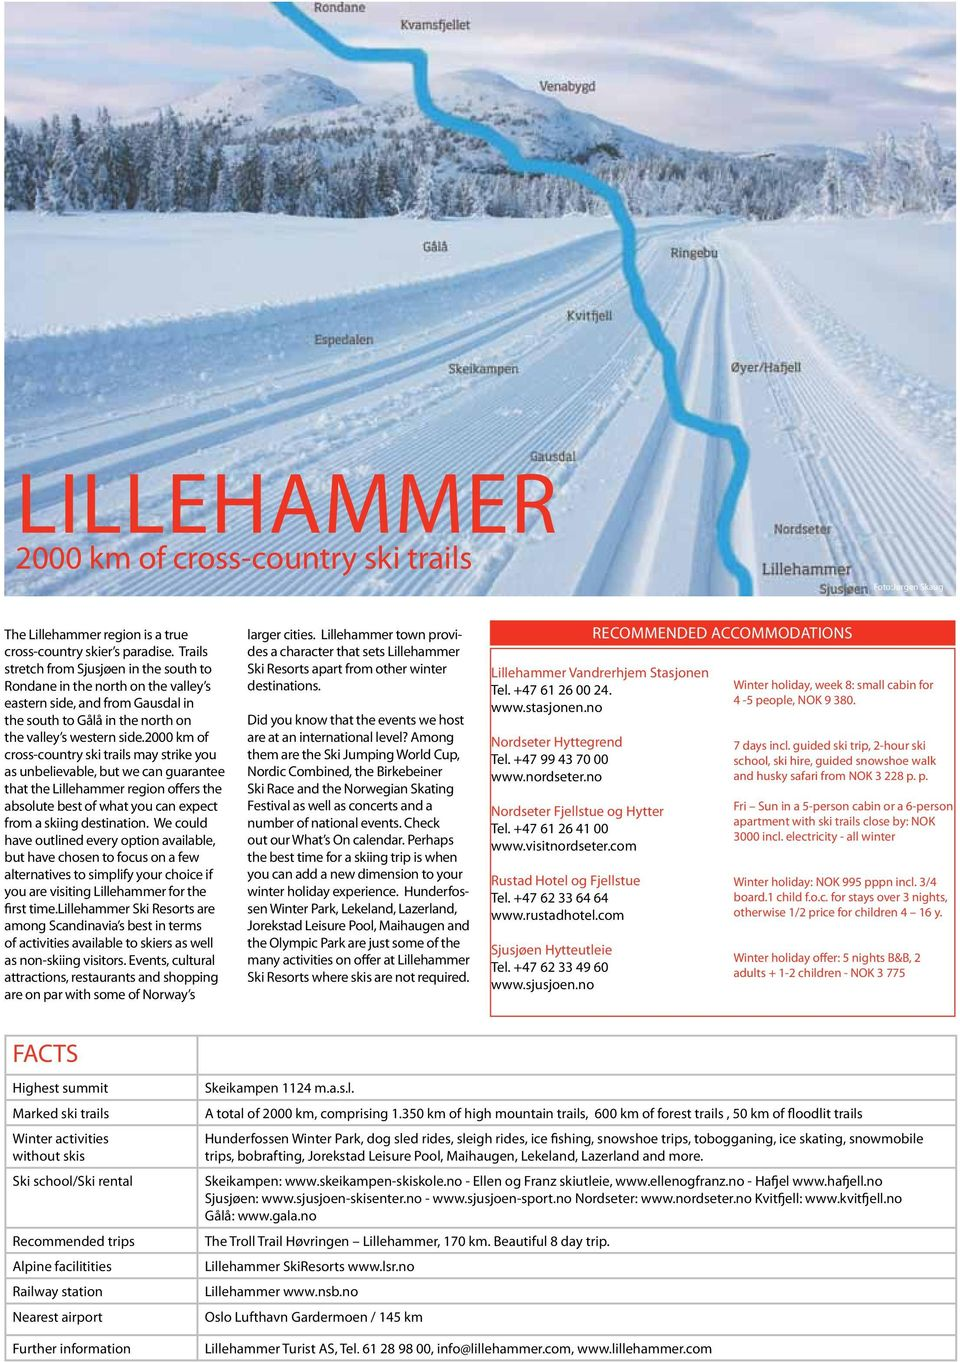 2000 km of cross-country ski trails may strike you as unbelievable, but we can guarantee that the Lillehammer region offers the absolute best of what you can expect from a skiing destination.